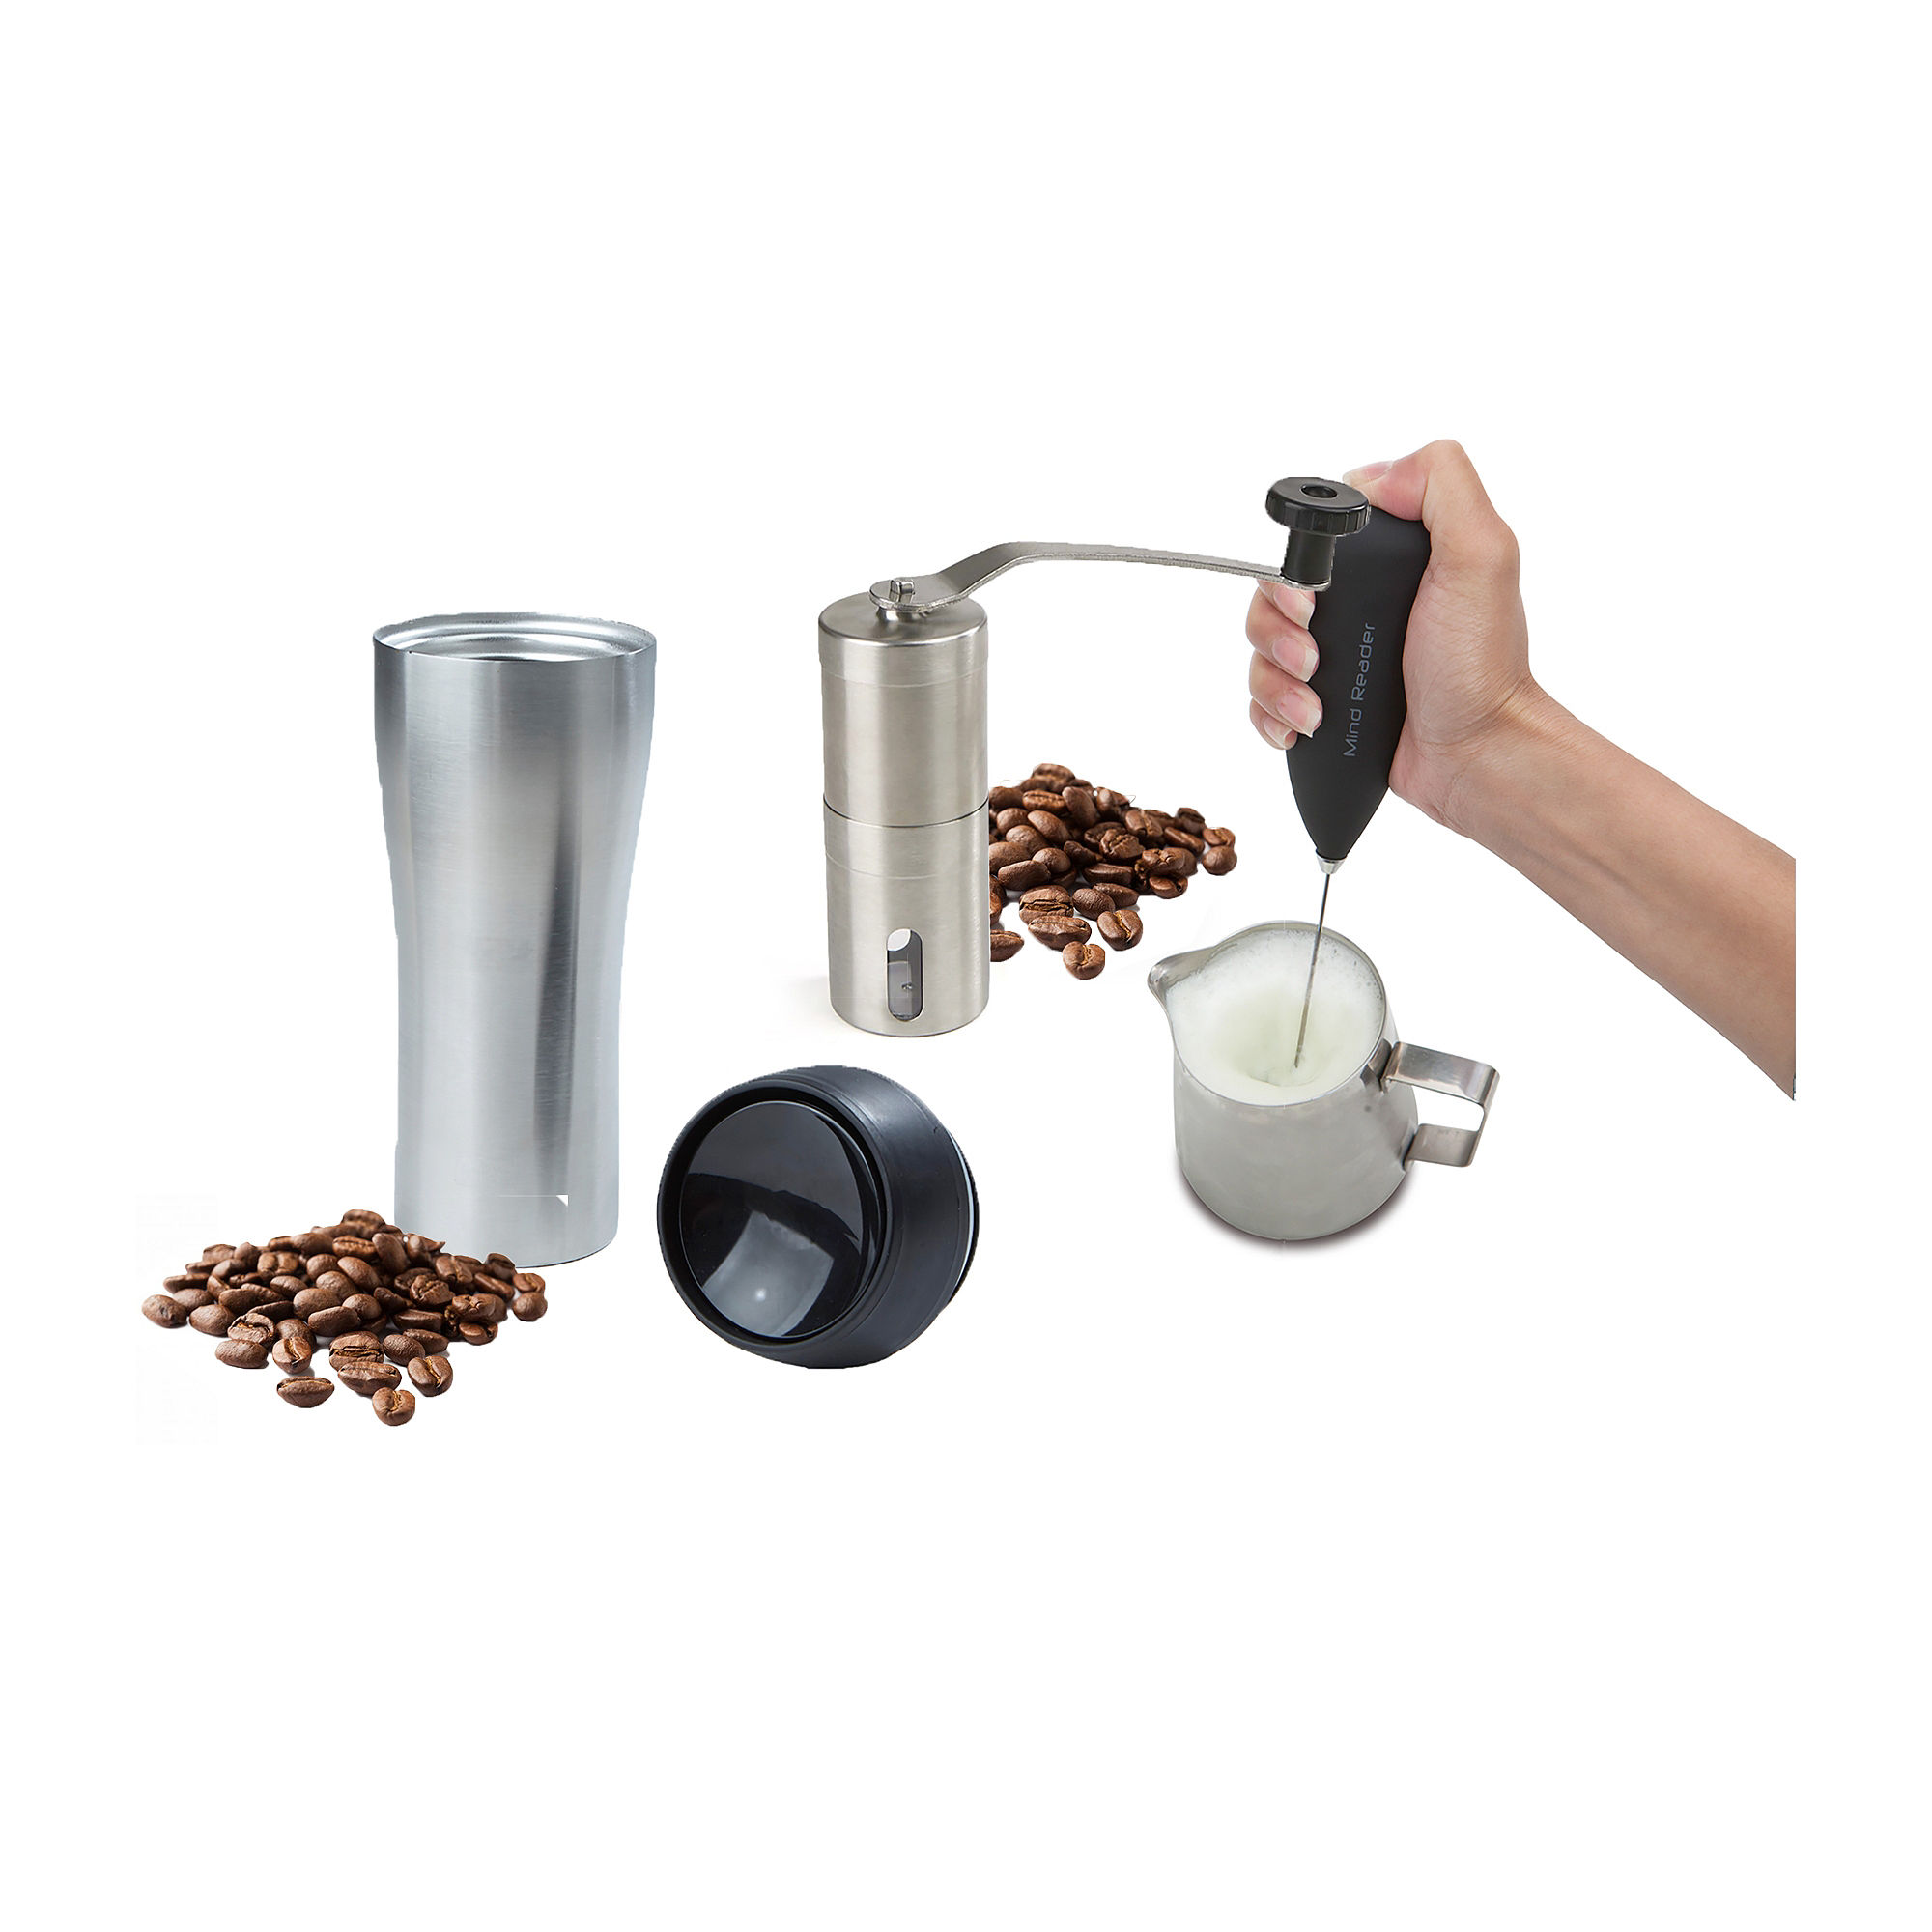 Mind Reader Coffee Lovers 4-Piece Set with Travel Mug, Frother, Frothing Pitcher, & Coffee Grinder